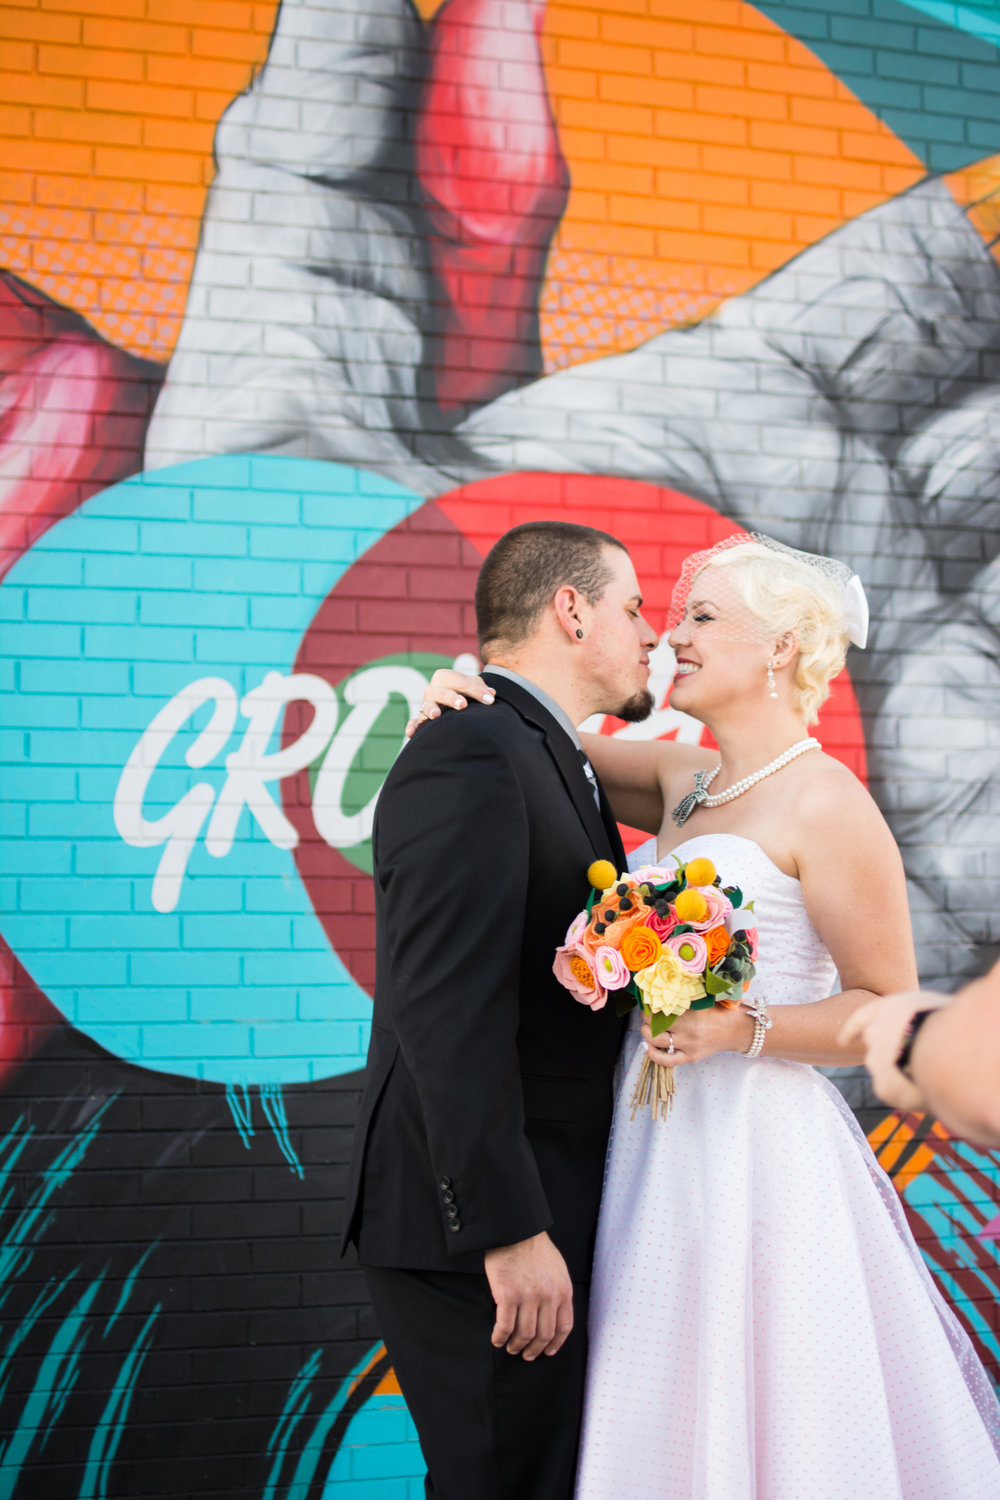 amanda+tom_wedding (374 of 592).jpg